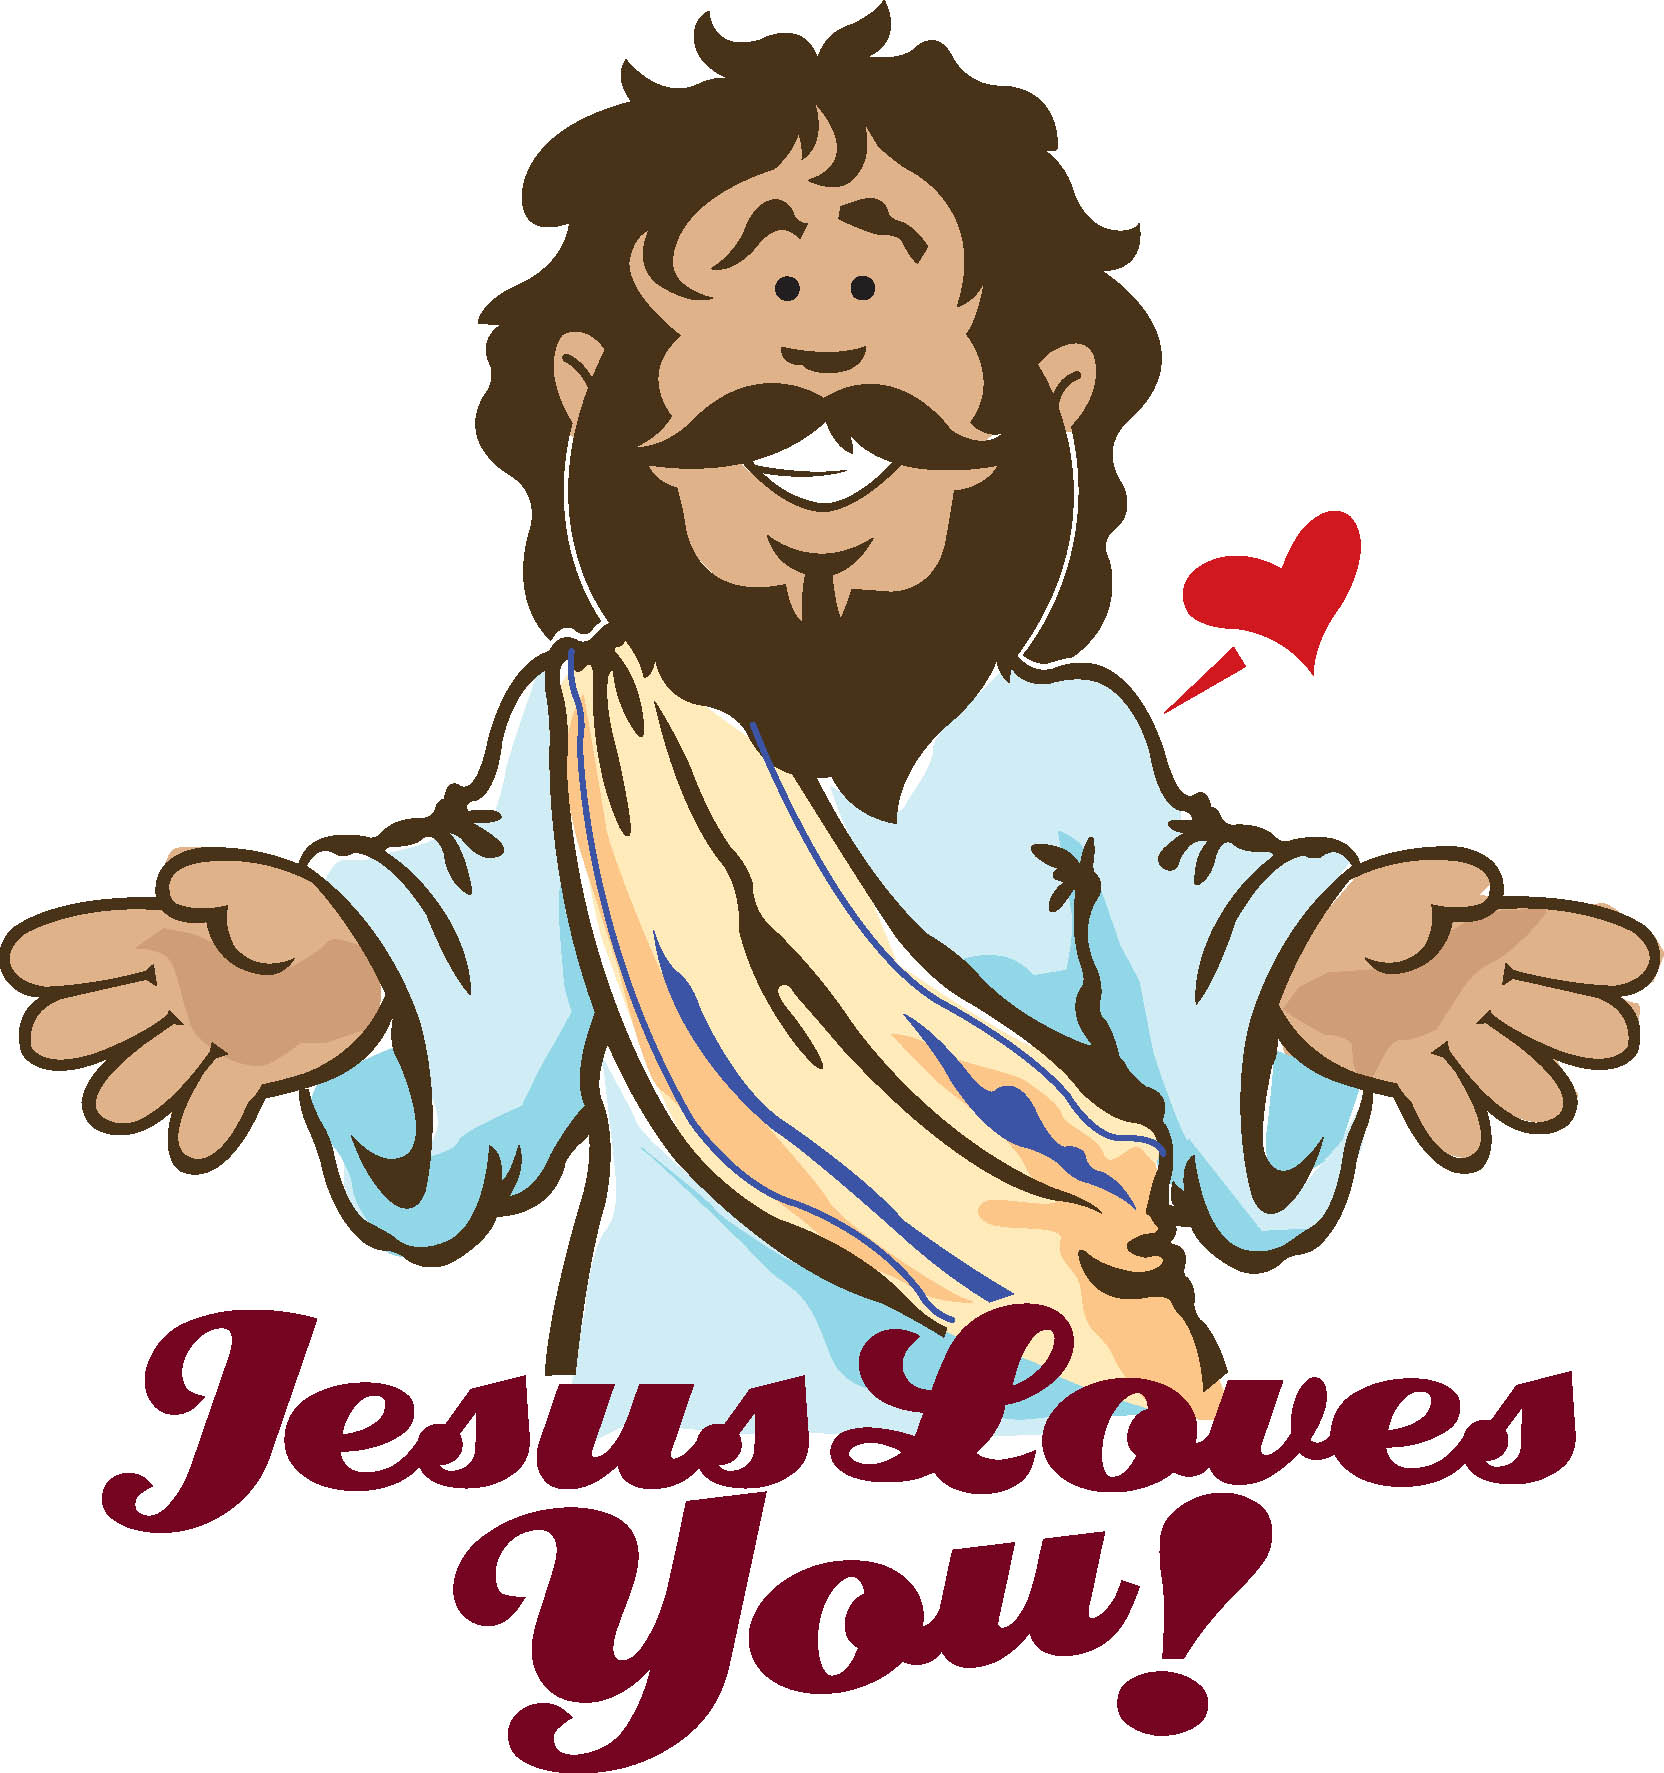 Gods clipart god loves you Images Clipart Clipground Loves Jesus